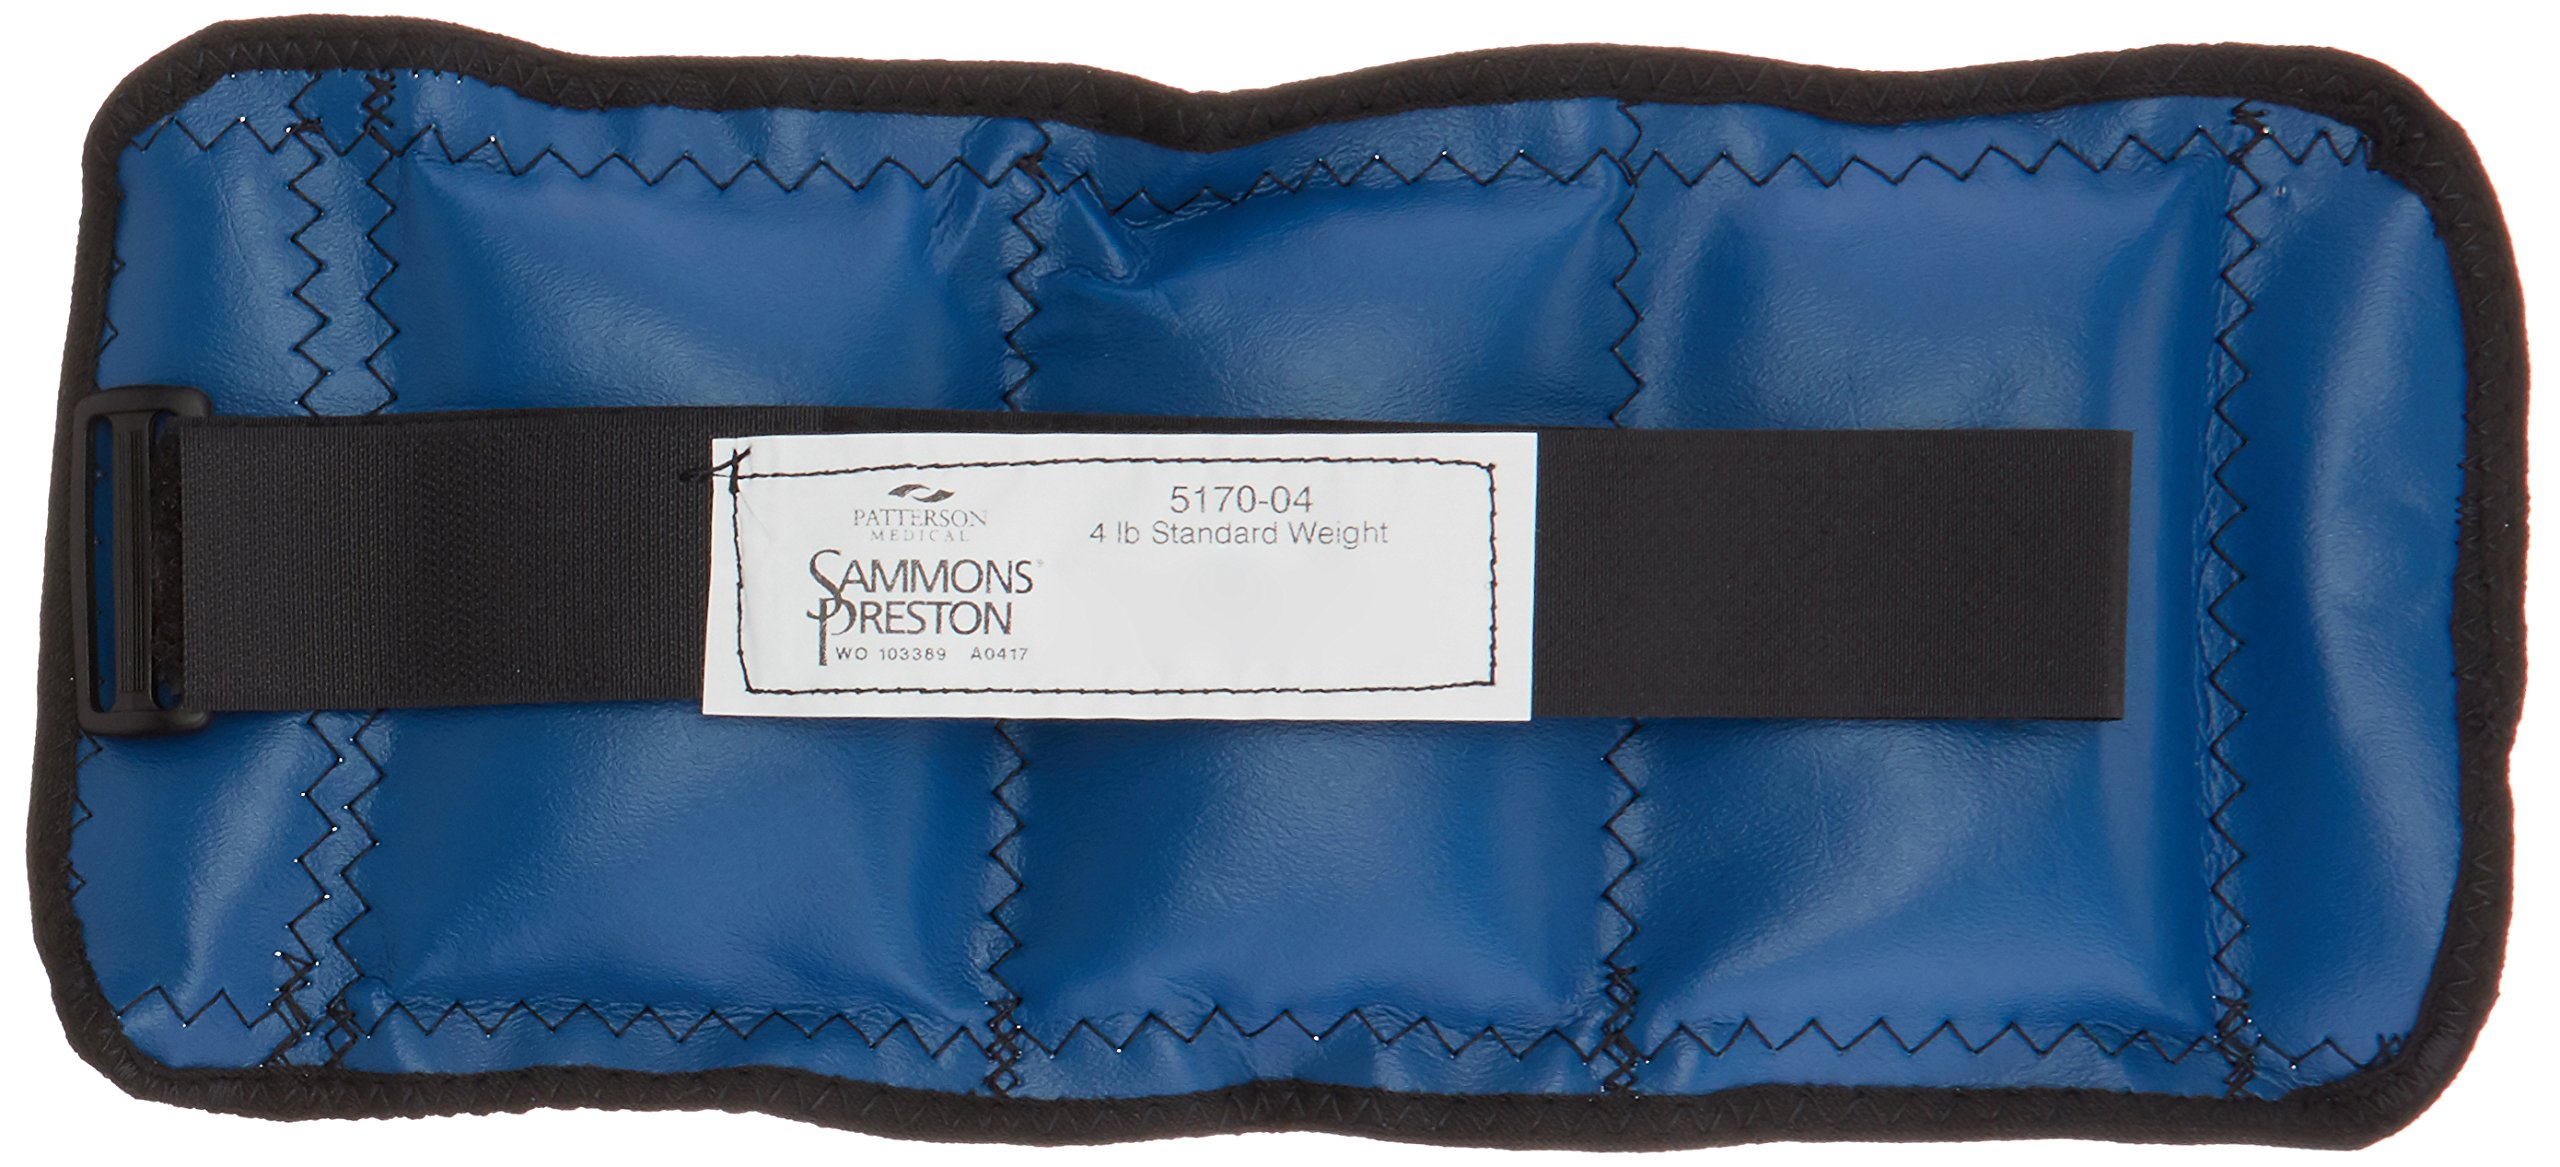 Sammons Preston Cuff Weight, 4 lb, Blue, Velcro Strap & D-Ring Closure, Grommet for Easy Hanging, Steel Ankle & Wrist Weights are Lead Free, Exercise Tool for Strength Building & Injury Rehab by Sammons Preston (Image #2)